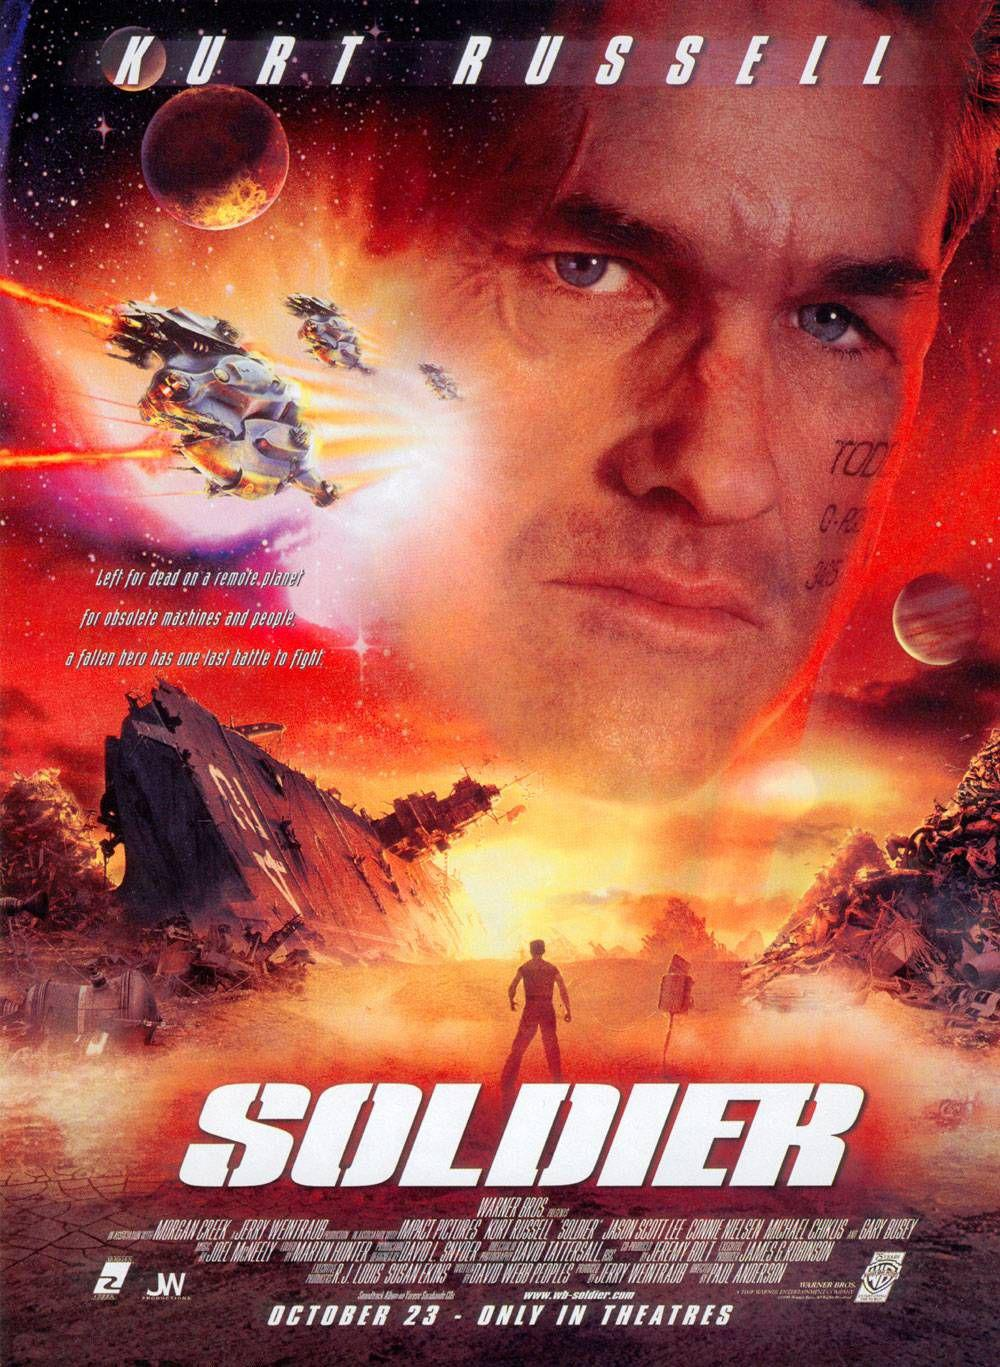 Soldier - film poster - Kurt Russell ... left for dead on a remote planet for obsolete machines and people, a fallen hero has one last battle to fight